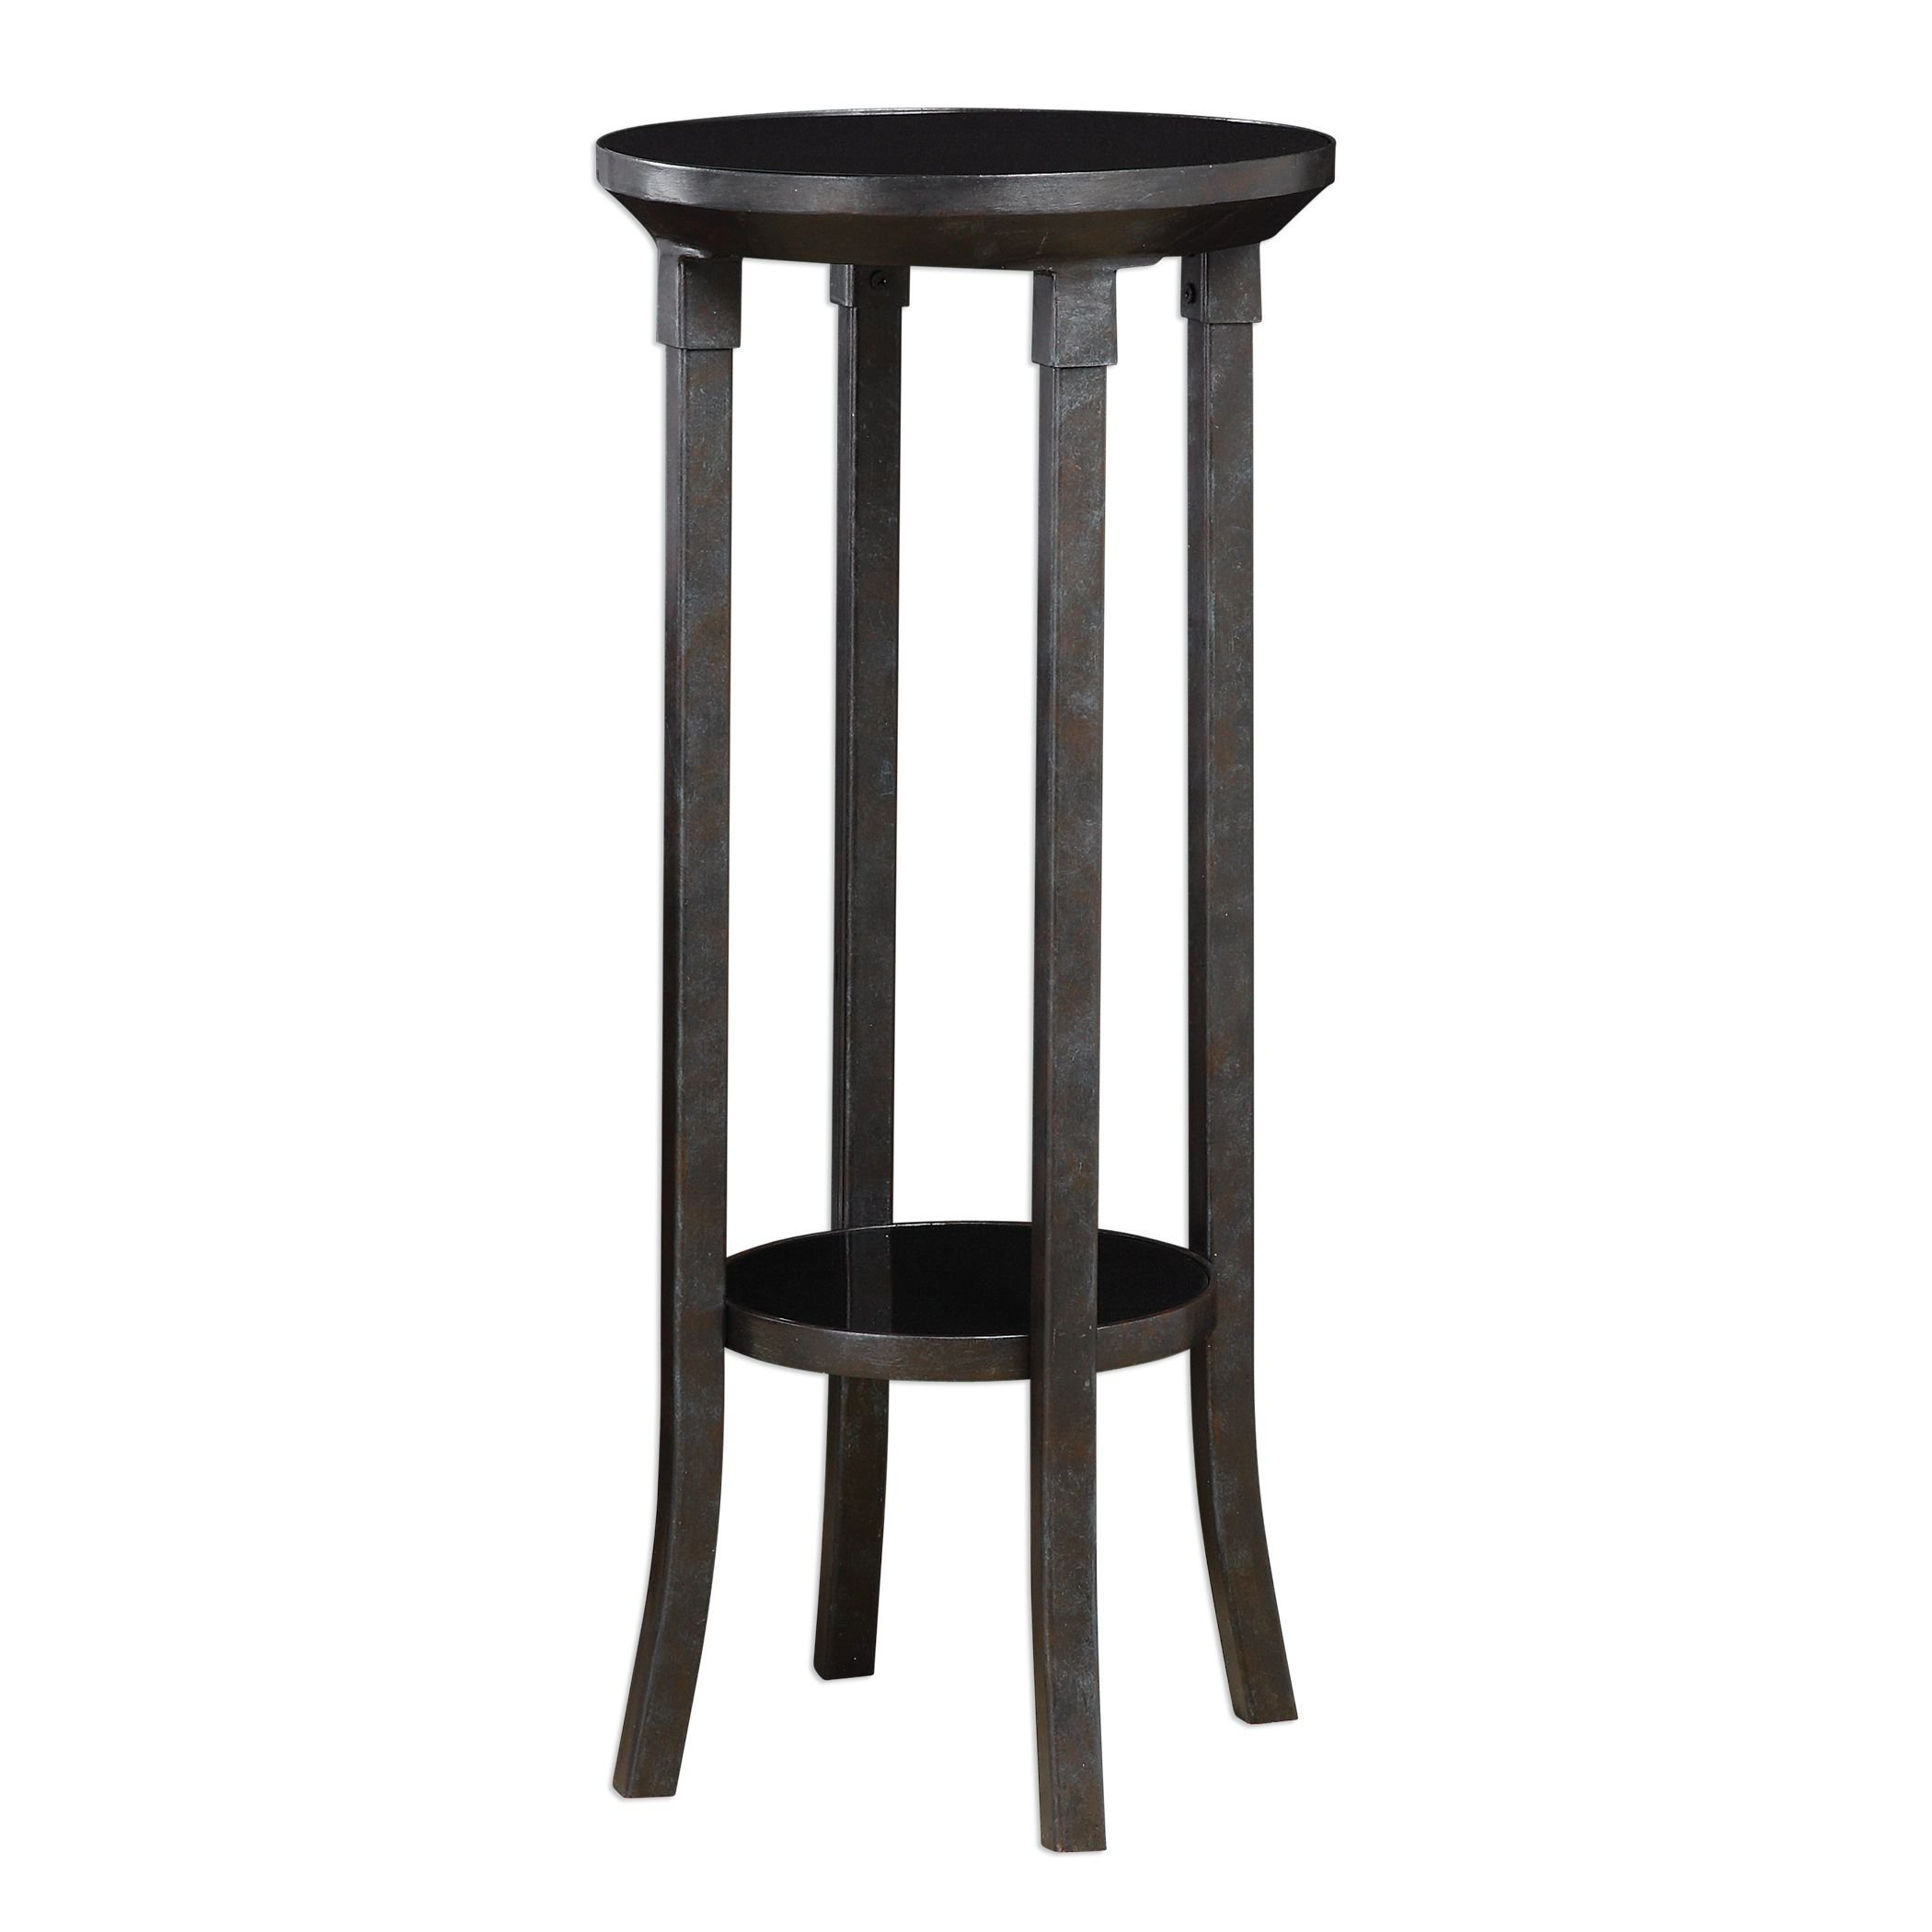 Round Minimalist Iron Pedestal Table Plant Stand | Tall Black Industrial Transitional